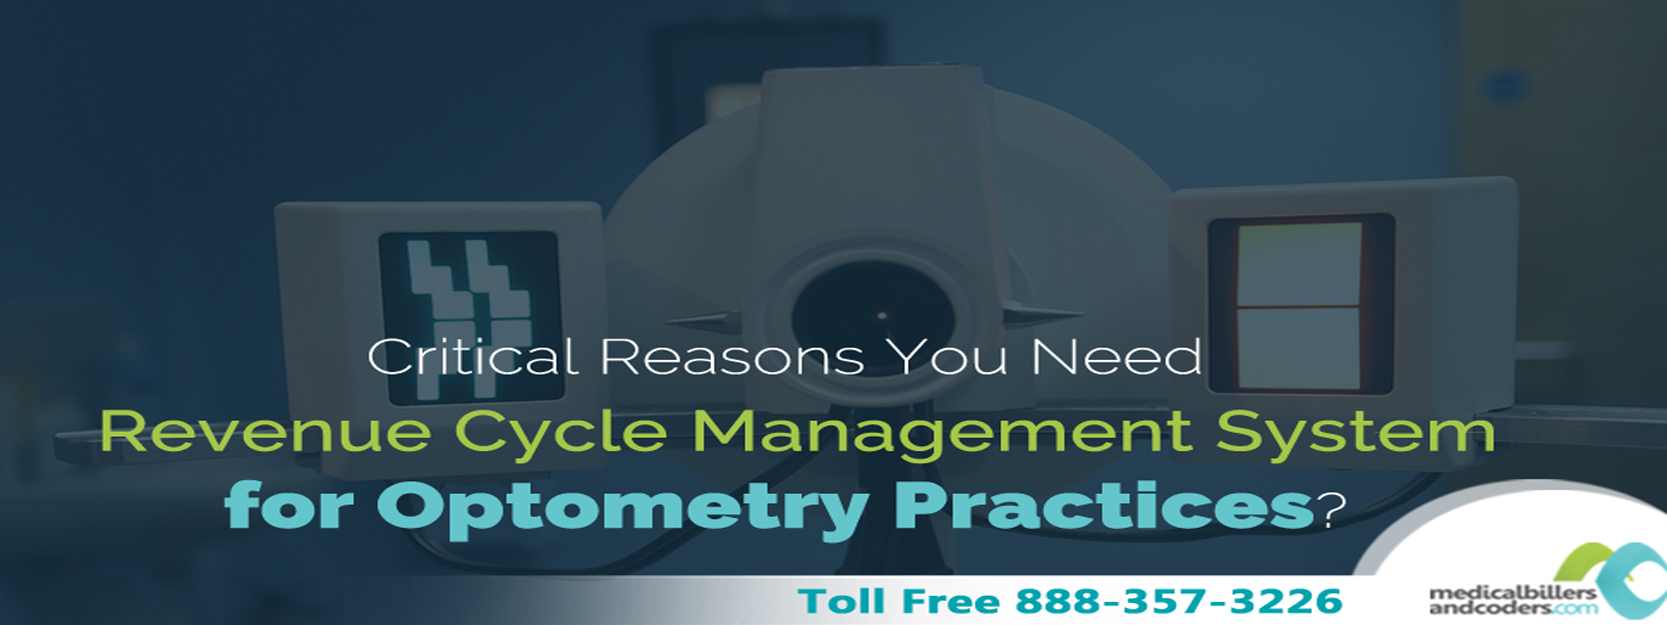 Critical-Reasons-You-Need-Revenue-Cycle-Management-System-for-Optometry-Practices.jpg